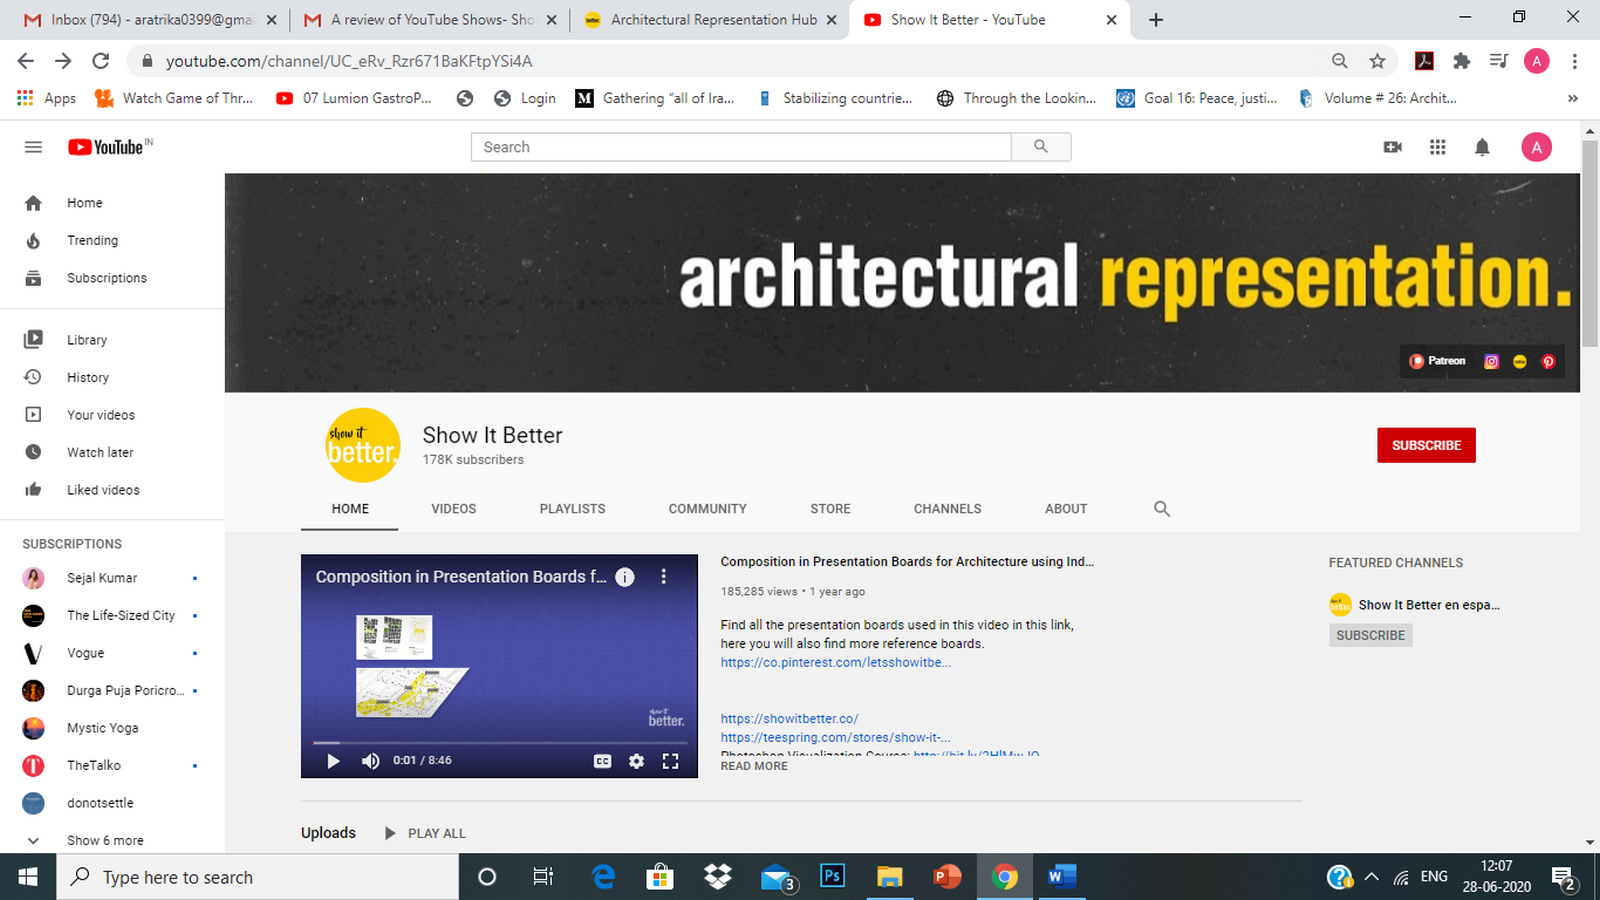 Youtube for Architects- Show It Better - Sheet1